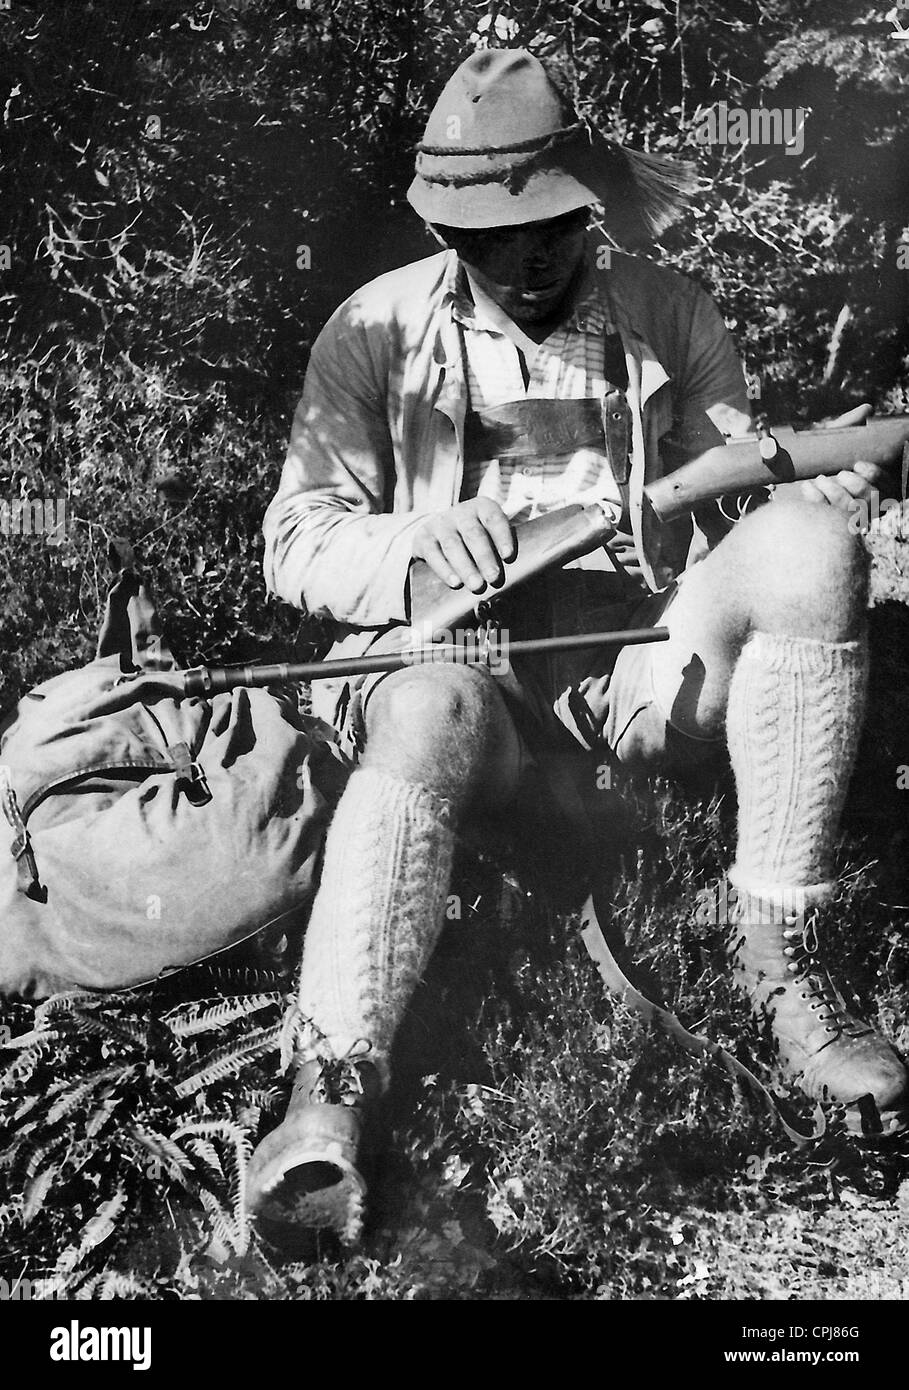 Poacher with carbine - Stock Image